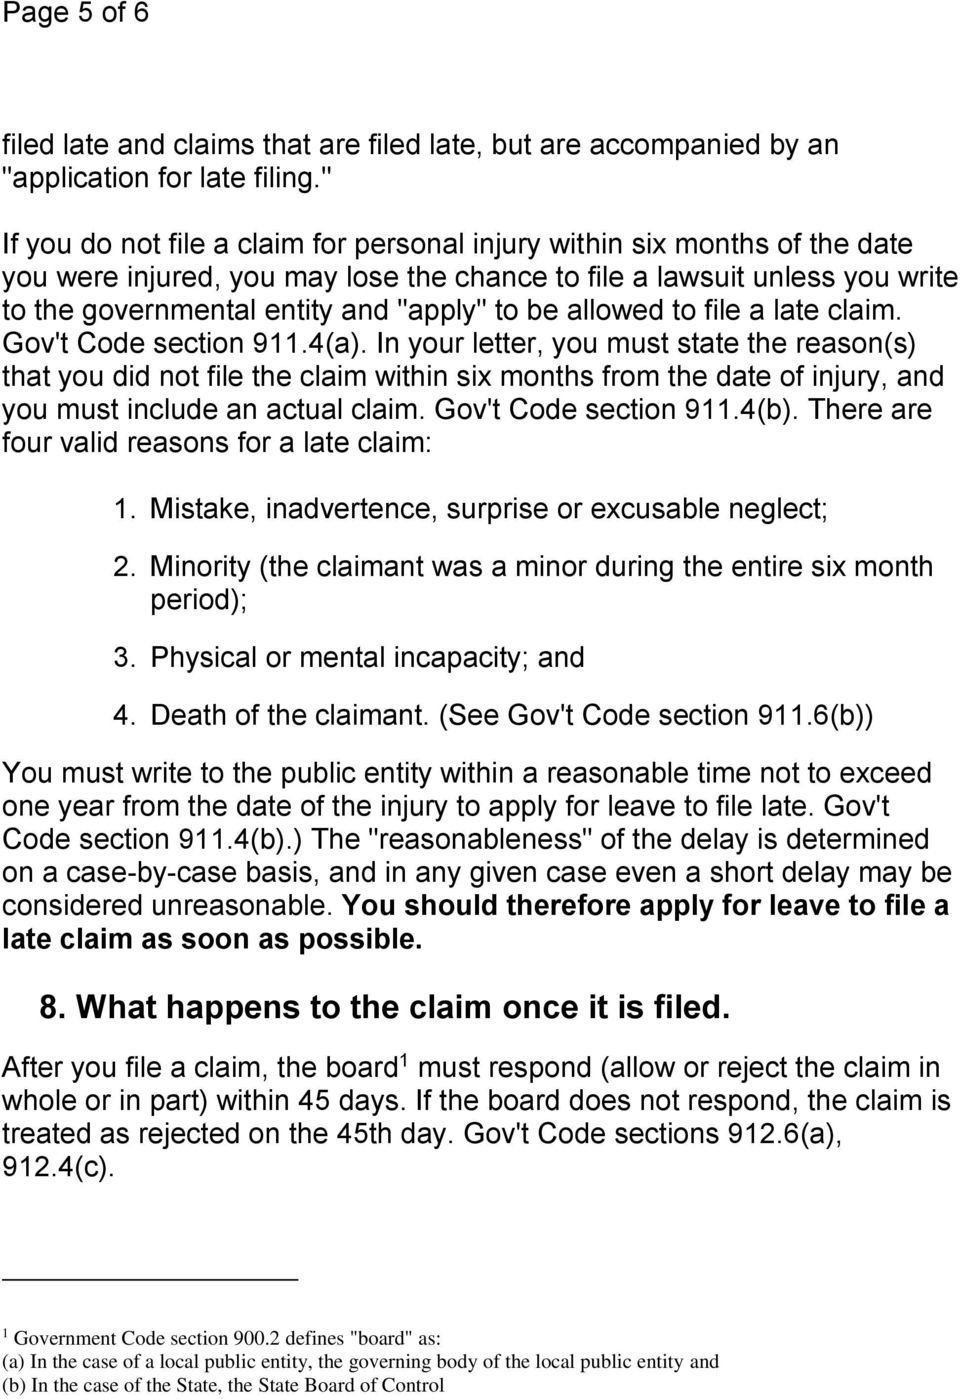 be allowed to file a late claim. Gov't Code section 911.4(a).